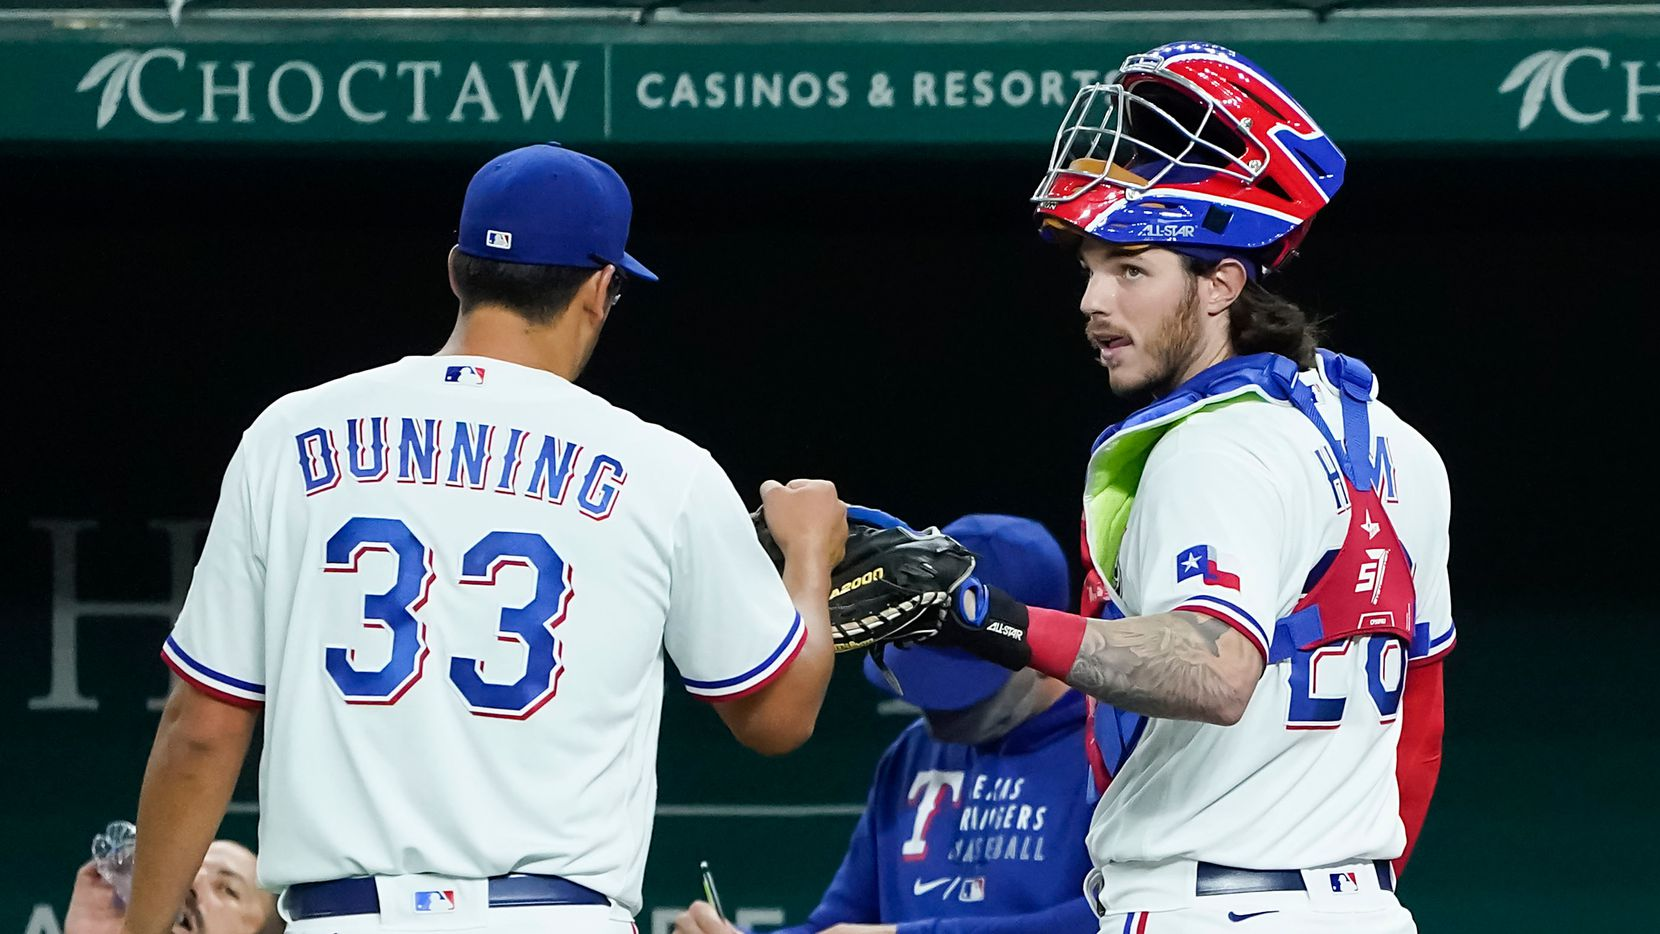 Texas Rangers pitcher Dane Dunning gets a fist bump from catcher Jonah Heim after pitching the sixth inning against the Baltimore Orioles at Globe Life Field on Saturday, April 17, 2021.